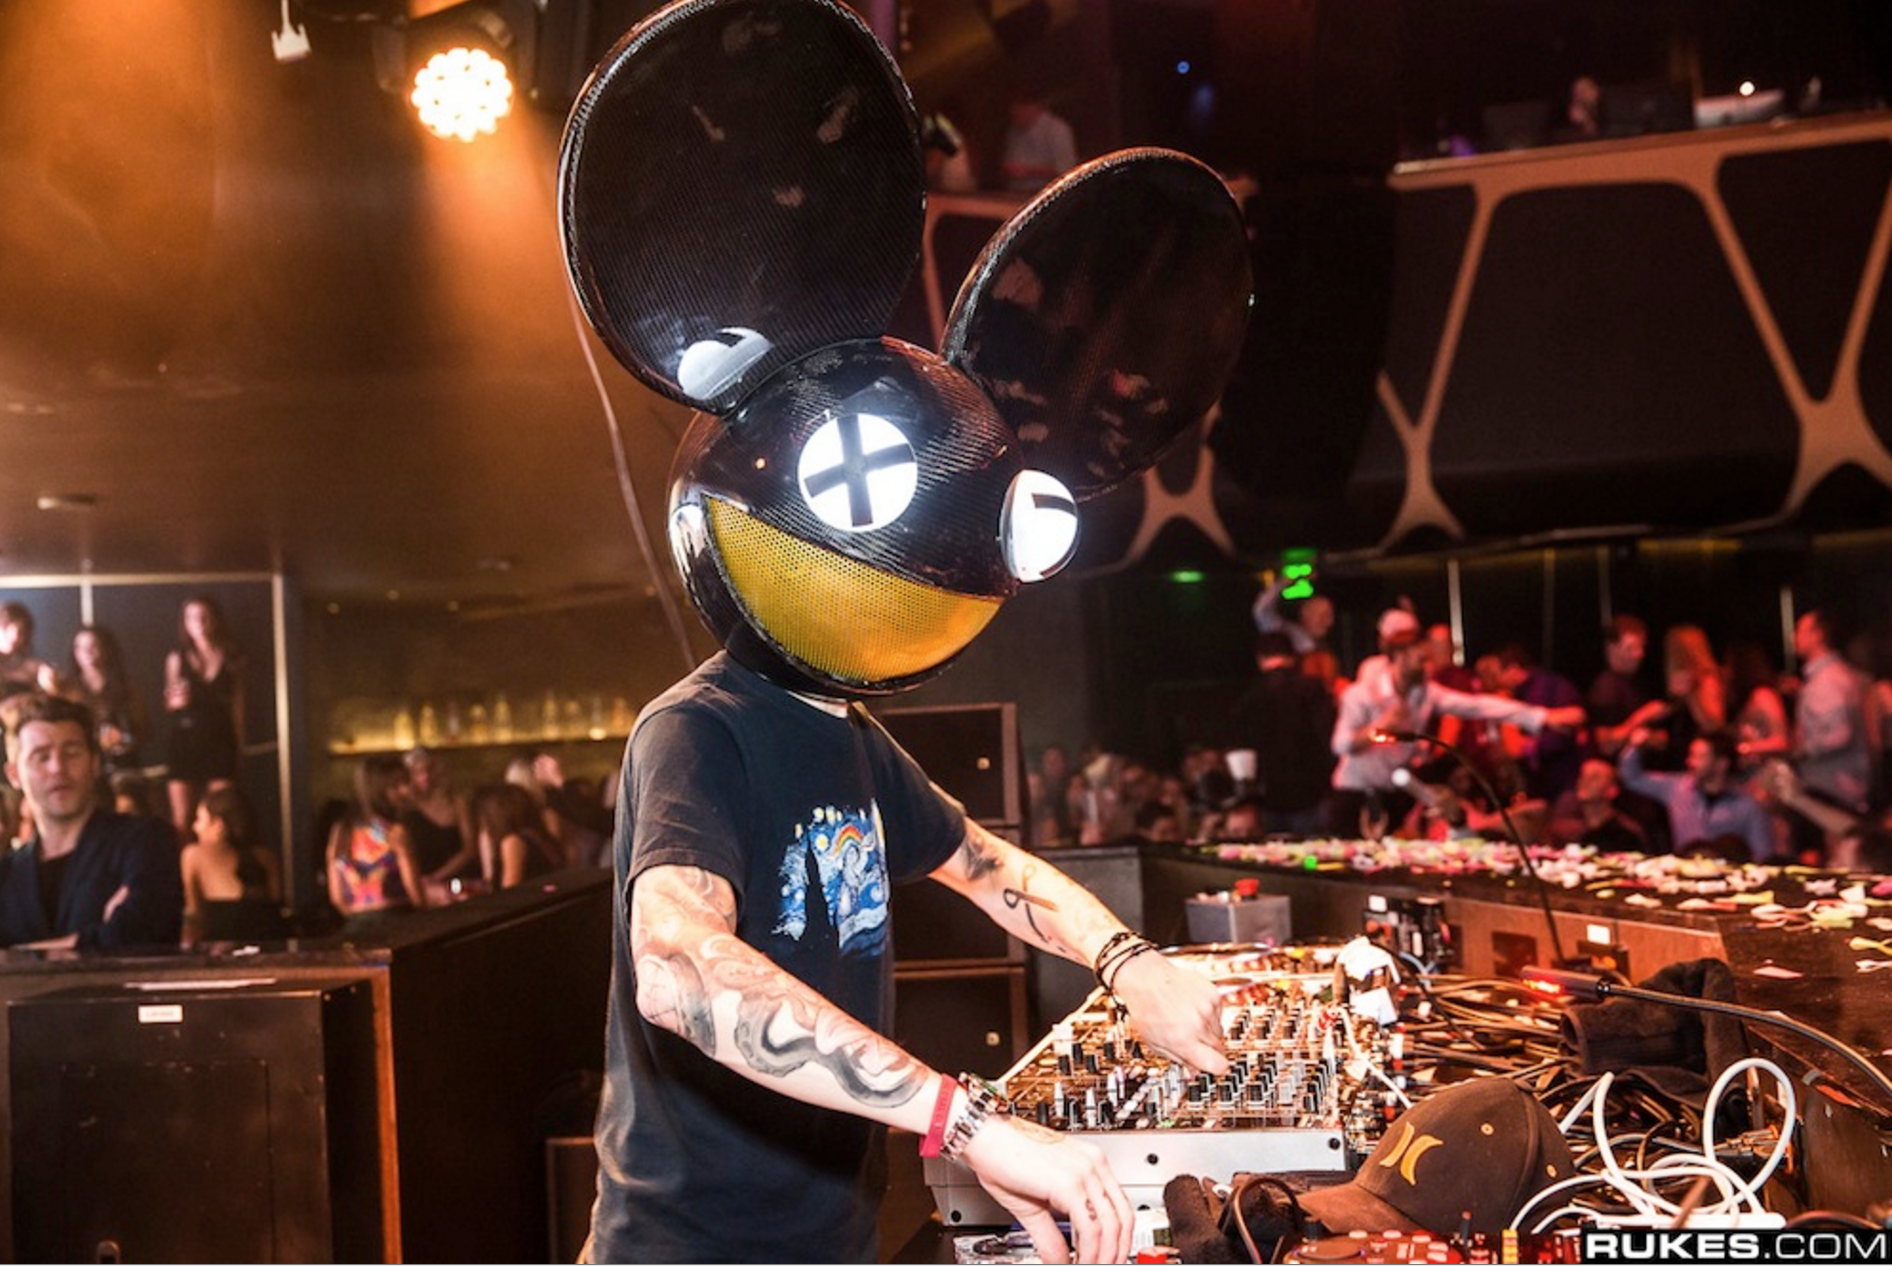 Deadmau5 Has Been Suspended From Twitch For Using A Homophobic Slur